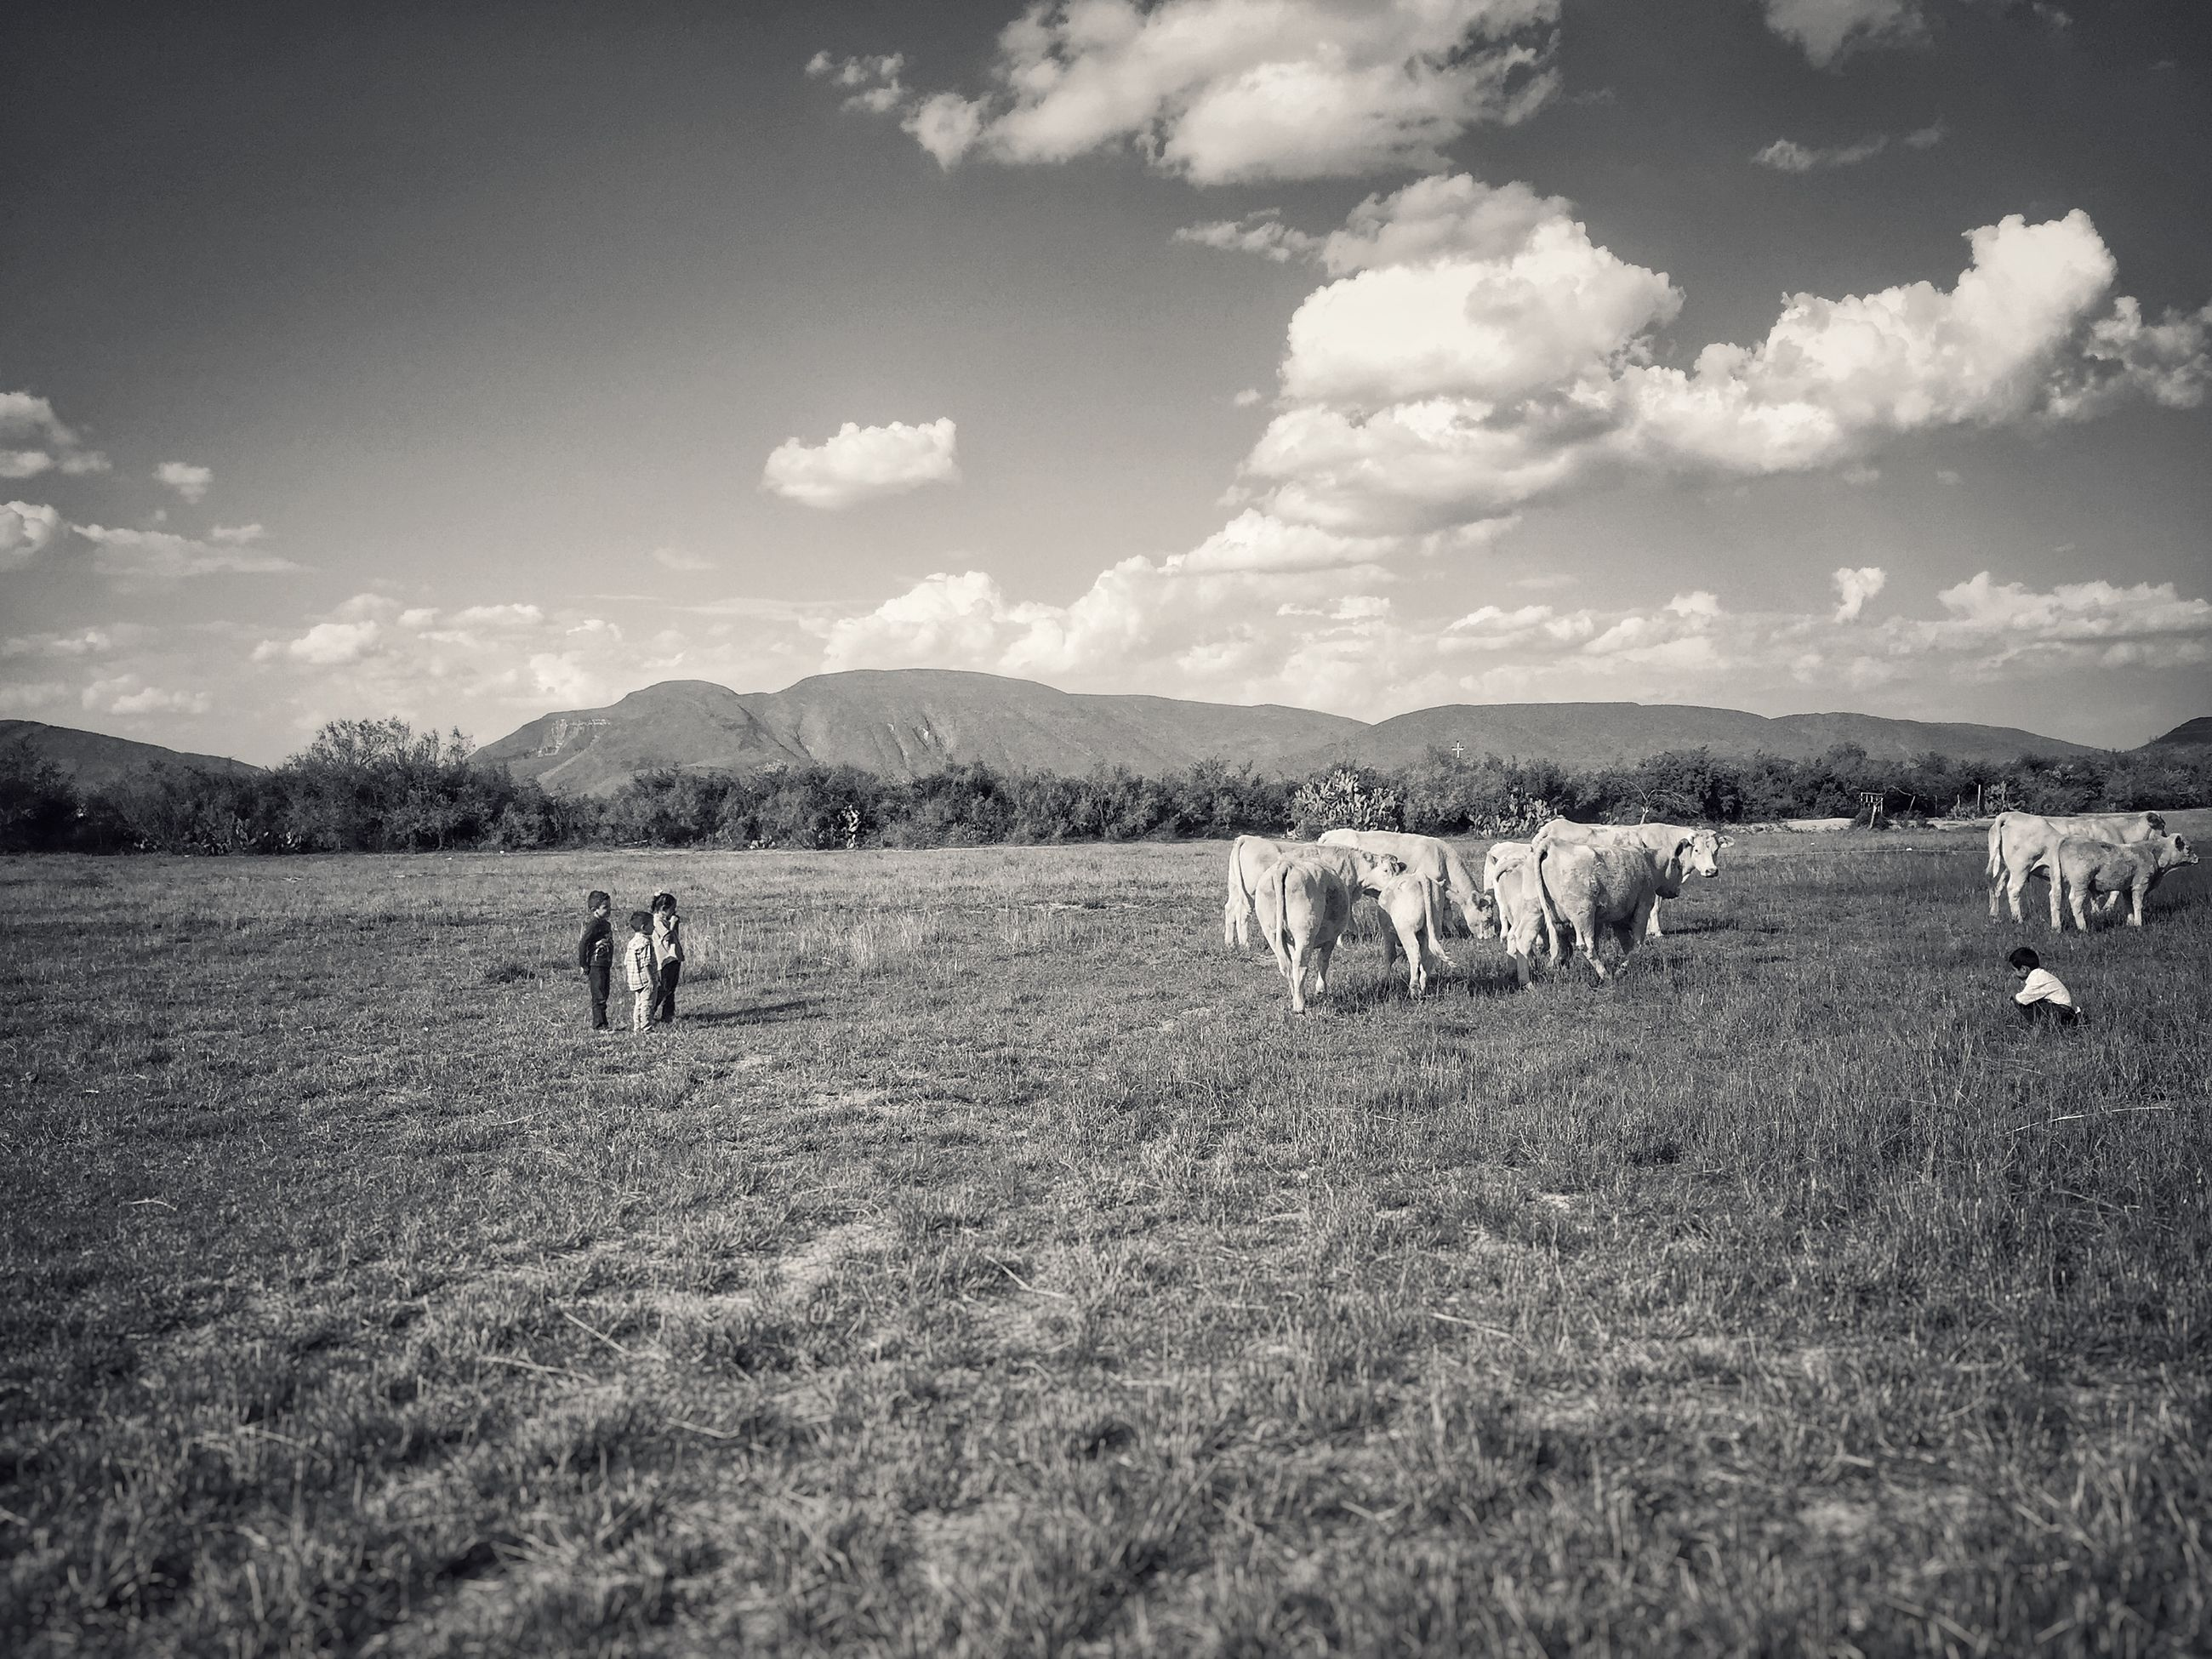 landscape, sky, field, livestock, domestic animals, grass, animal themes, cloud - sky, mammal, rural scene, grazing, nature, tranquil scene, scenics, mountain, tranquility, cow, beauty in nature, horse